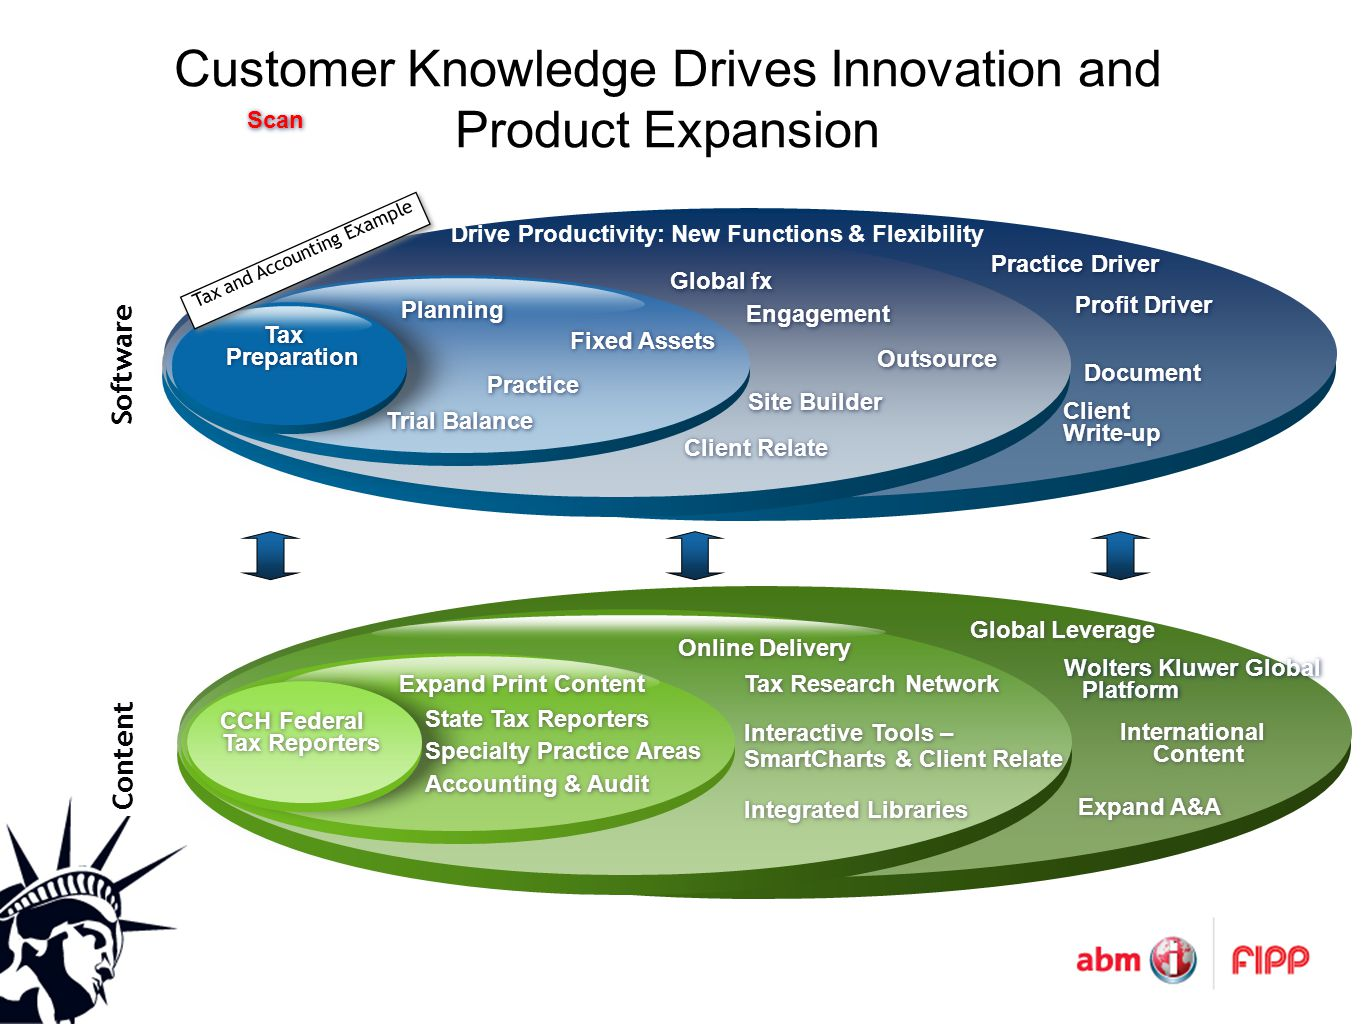 Customer Knowledge Drives Innovation and Product Expansion Engagement Fixed Assets Client Relate Site Builder Client Write-up Profit Driver Practice Driver Scan Outsource Practice Tax Preparation Tax Preparation Document Global fx Trial Balance Planning Software Drive Productivity: New Functions & Flexibility Content CCH Federal Tax Reporters Expand Print Content Online Delivery Global Leverage Tax Research Network Integrated Libraries Interactive Tools – SmartCharts & Client Relate Interactive Tools – SmartCharts & Client Relate State Tax Reporters Specialty Practice Areas Accounting & Audit Wolters Kluwer Global Platform International Content Expand A&A Tax and Accounting Example